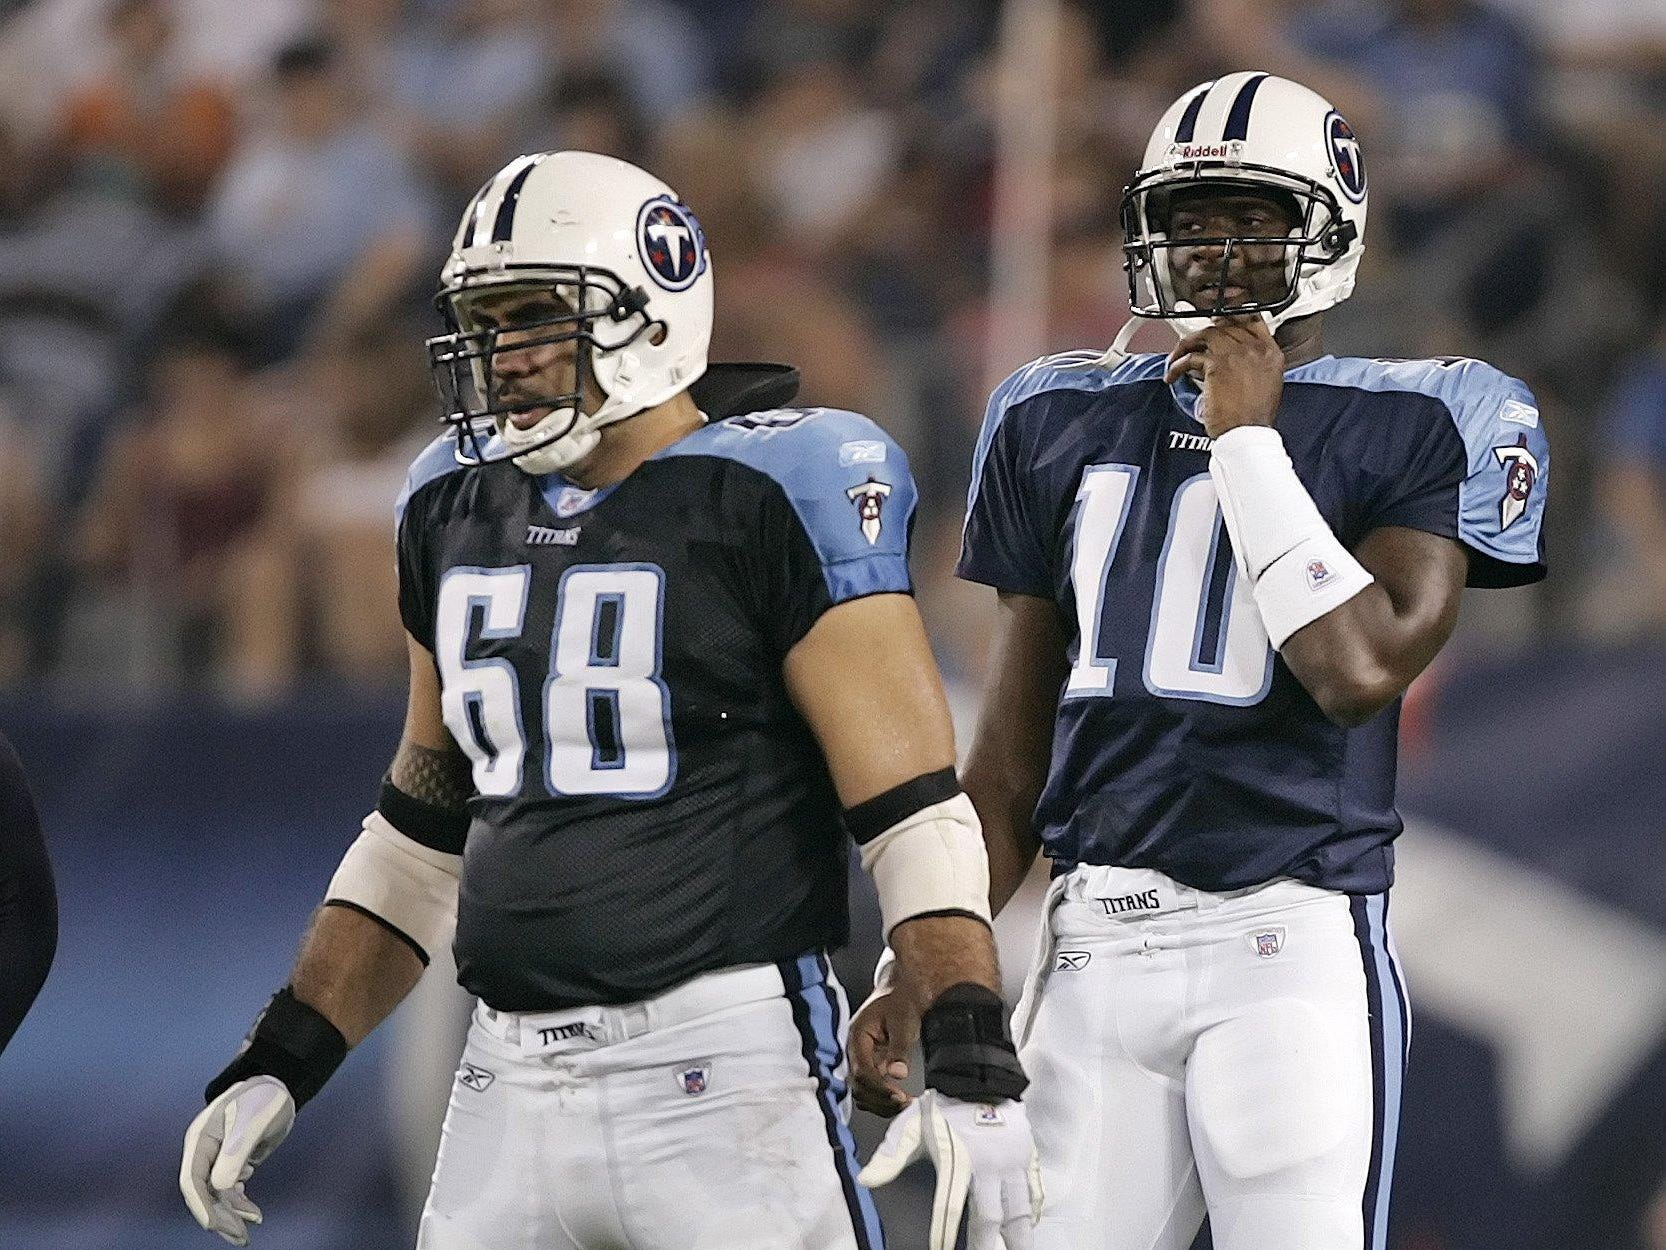 Tennessee Titans center Kevn Mawae (68) lines up in front of quarterback Vince Young (10) durinig their pre-season football game against the New Orleans Saints in Nashville, Tenn. on Aug. 12, 2006.